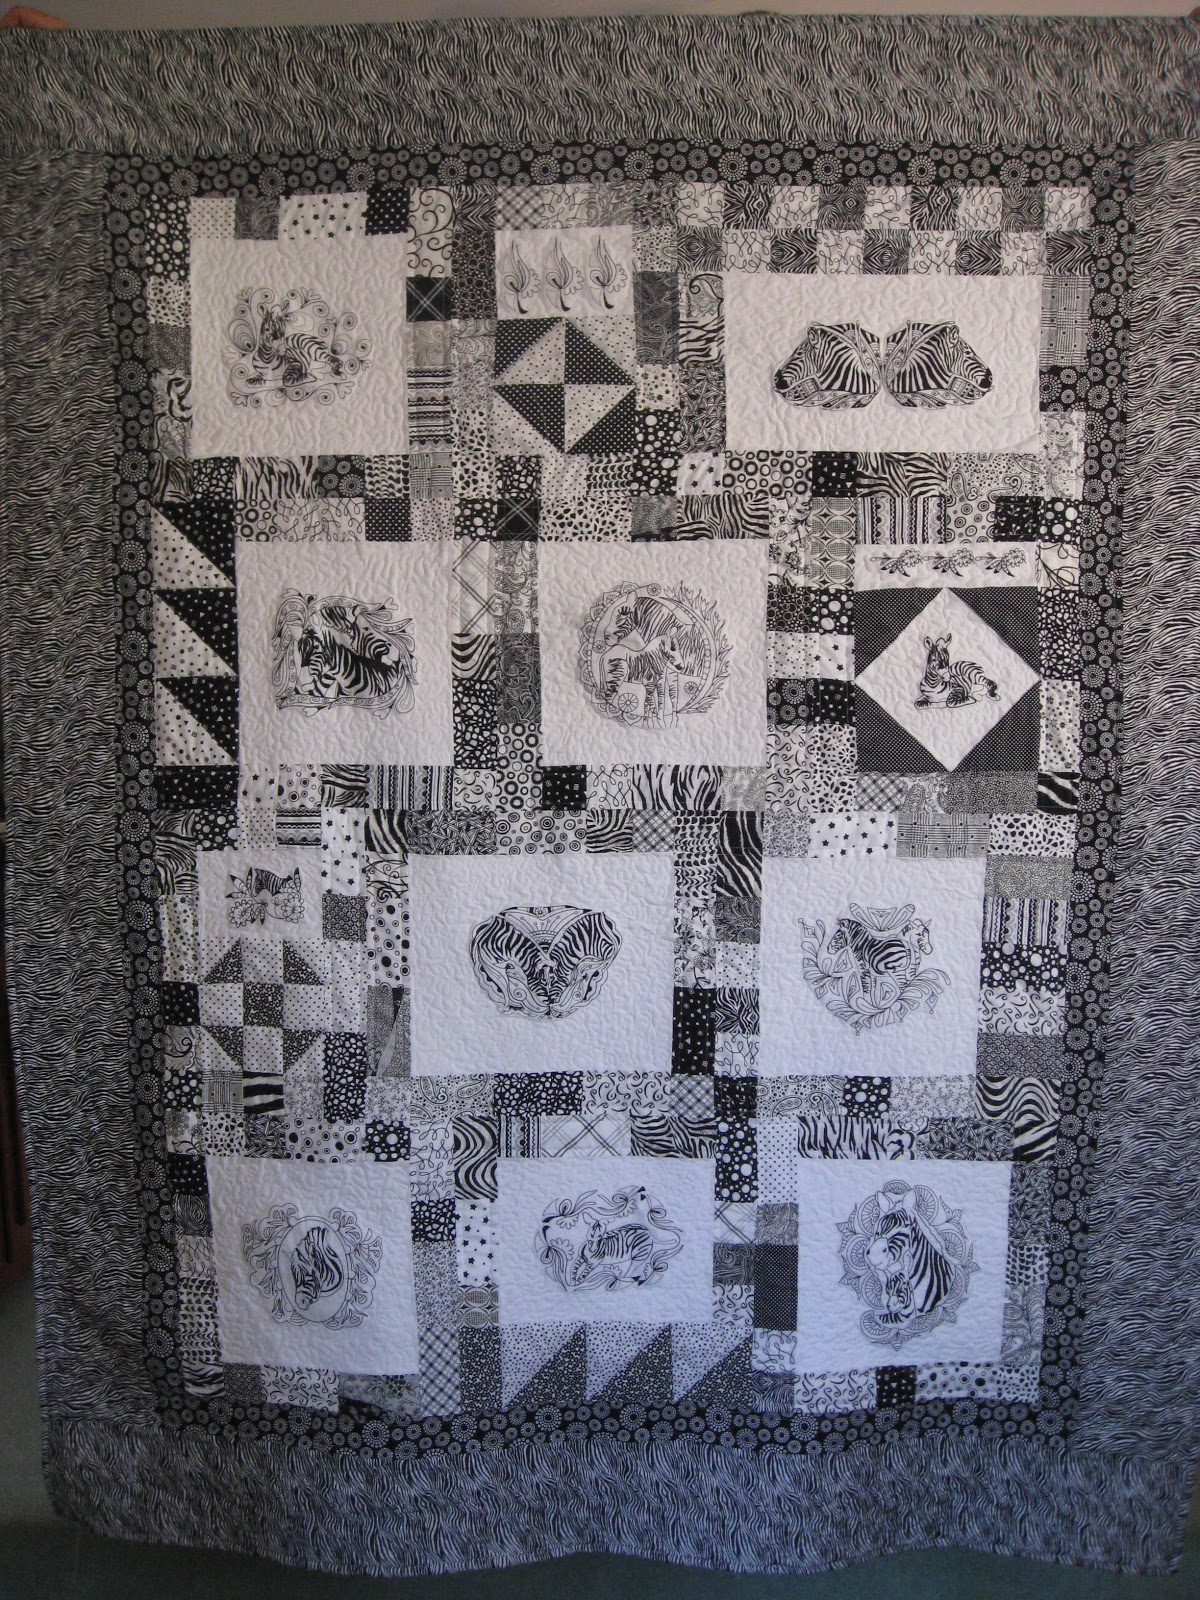 Vicki s Fabric Creations: Free Online Classes/Block of the Month BOM